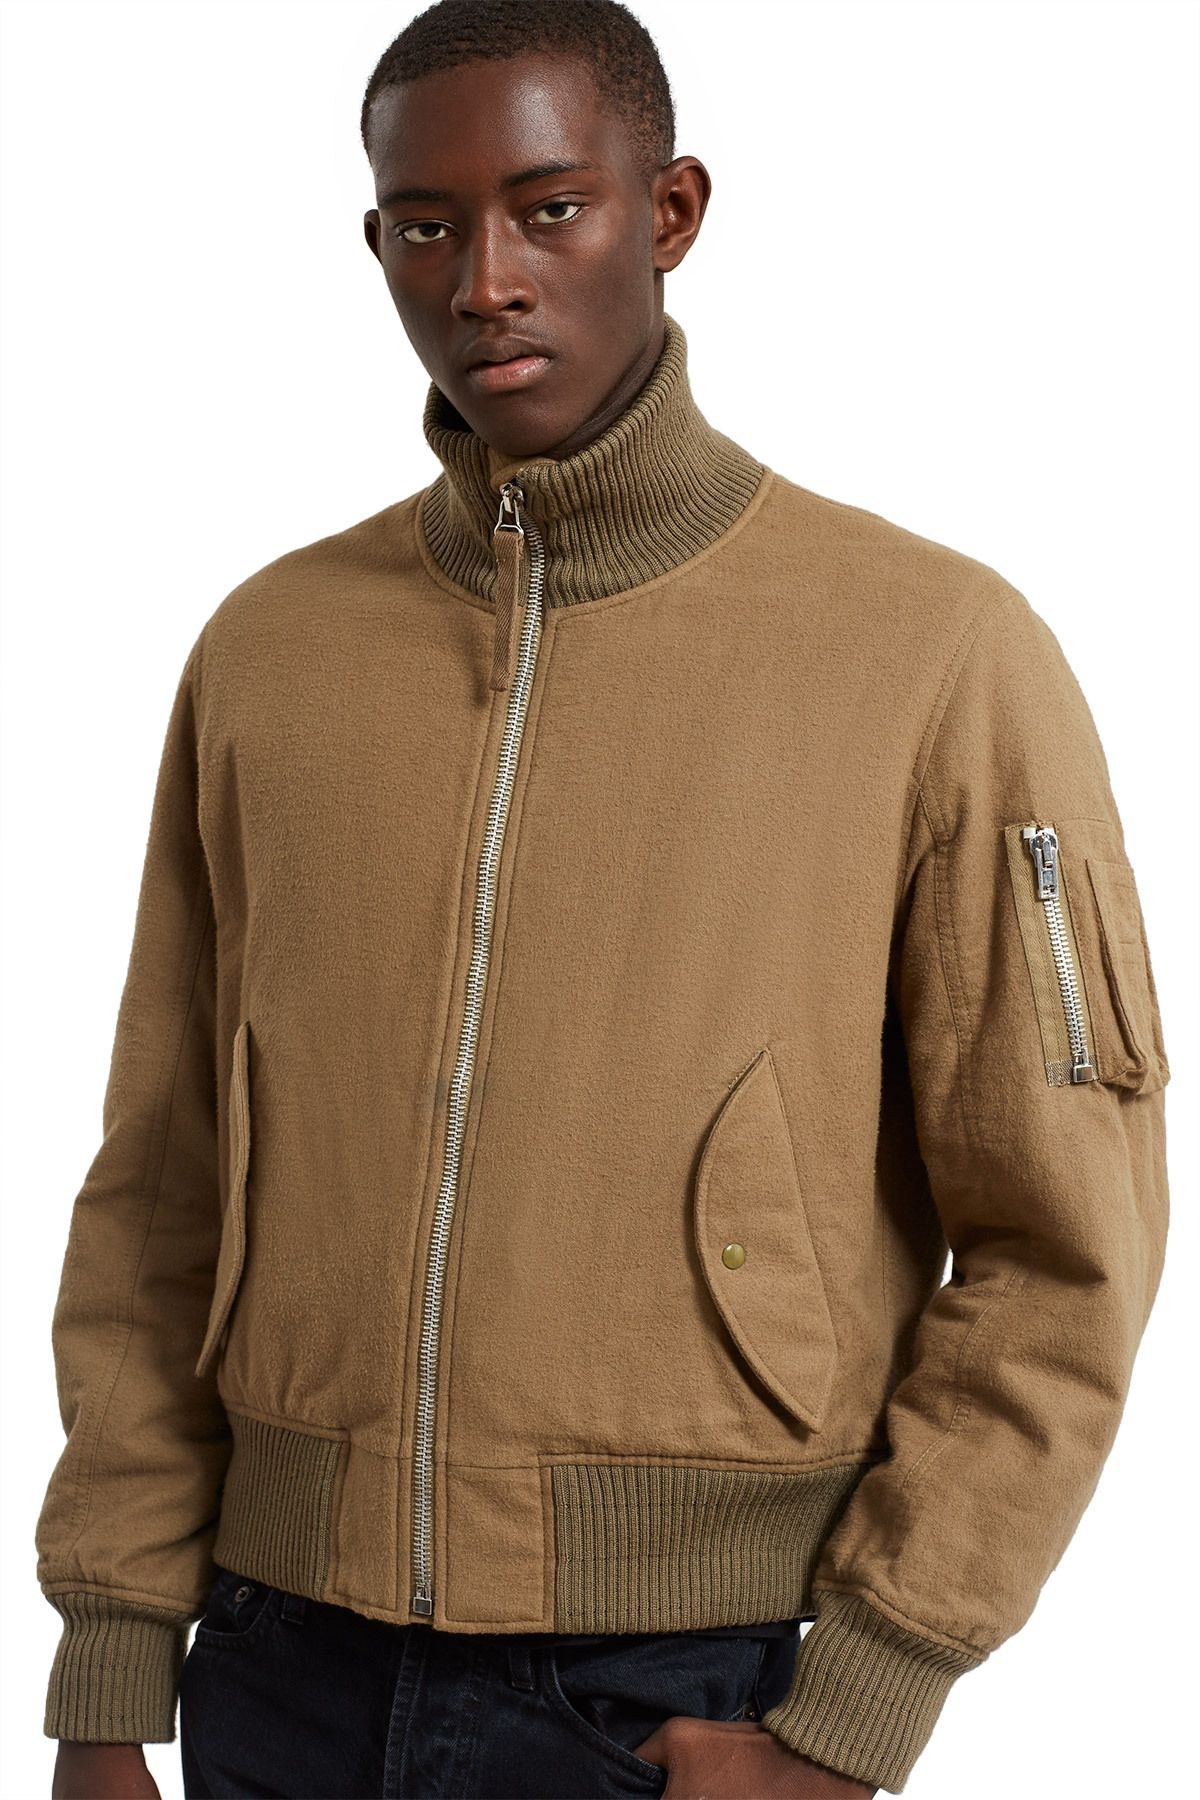 33b9a1aa6 Helmut Lang RE-EDITION, High Collar Bomber First produced in 2003 ...